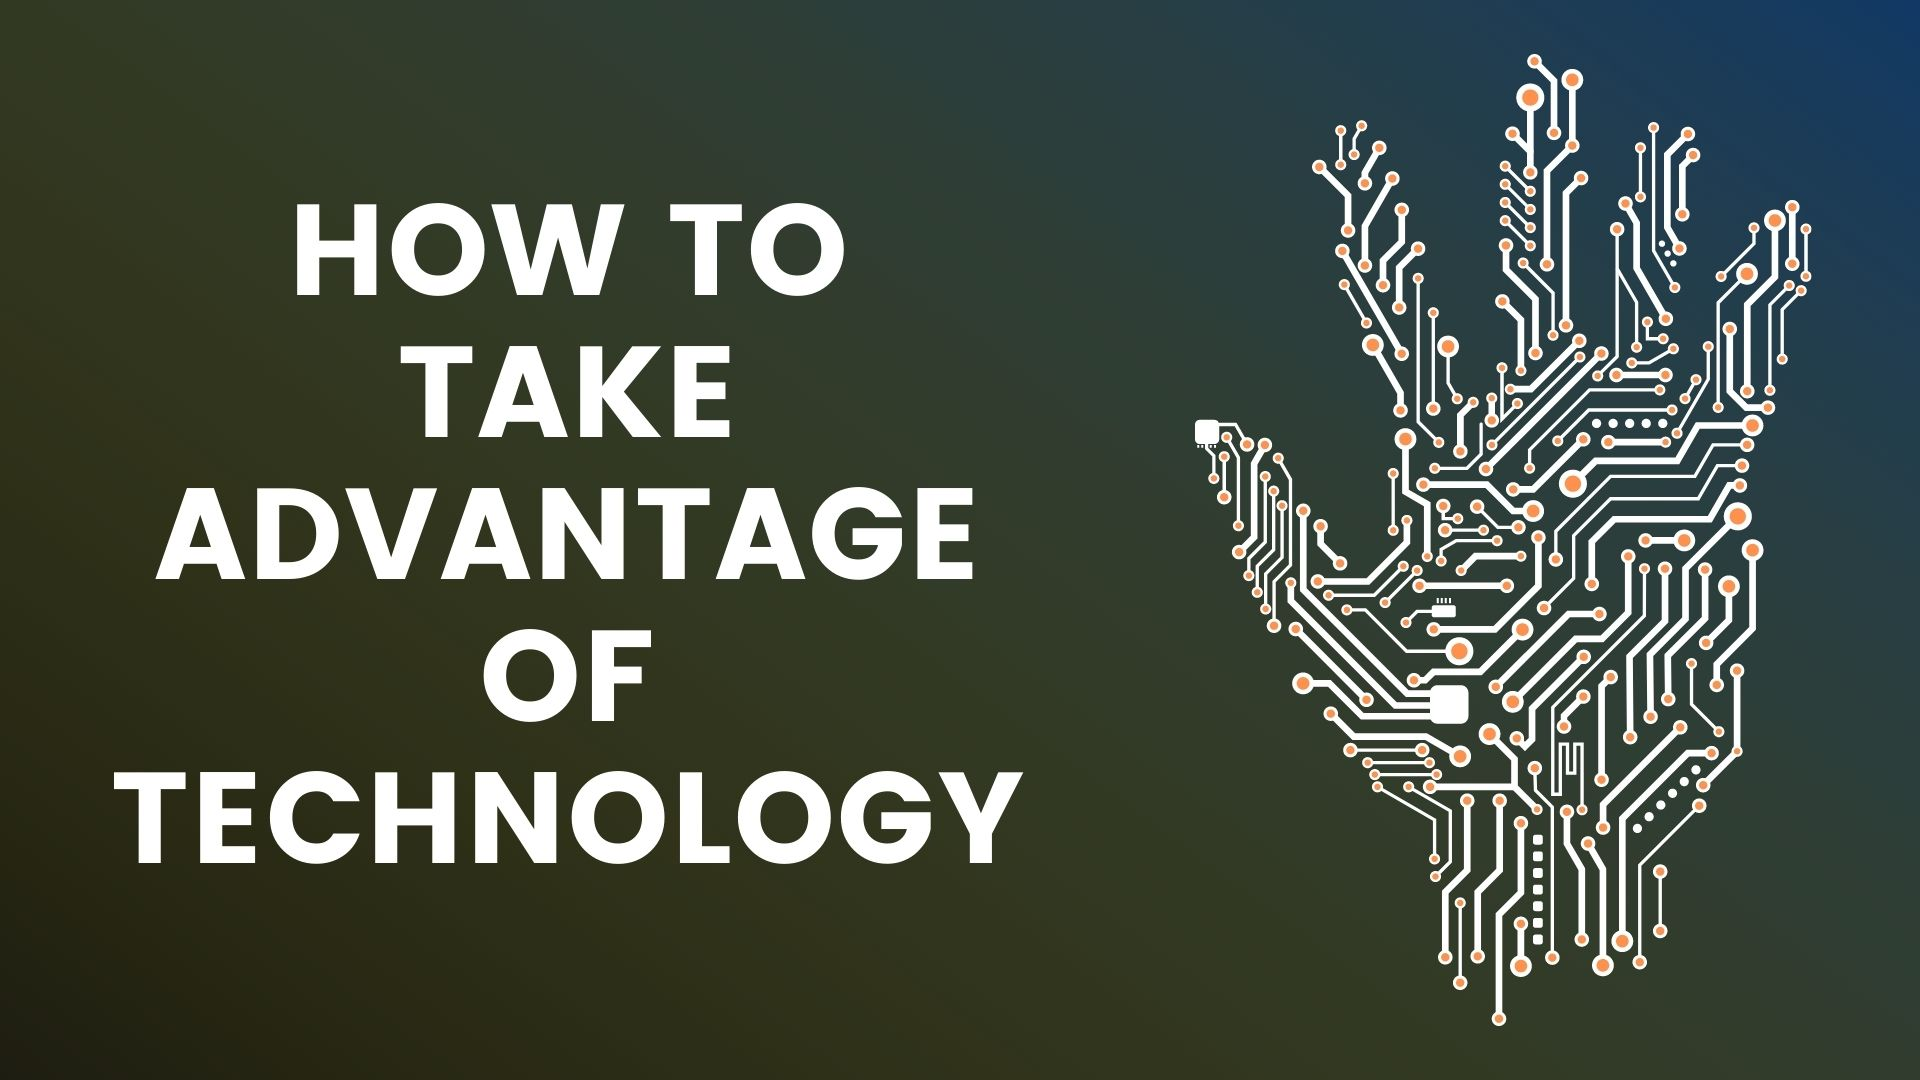 How to take advantage of technology